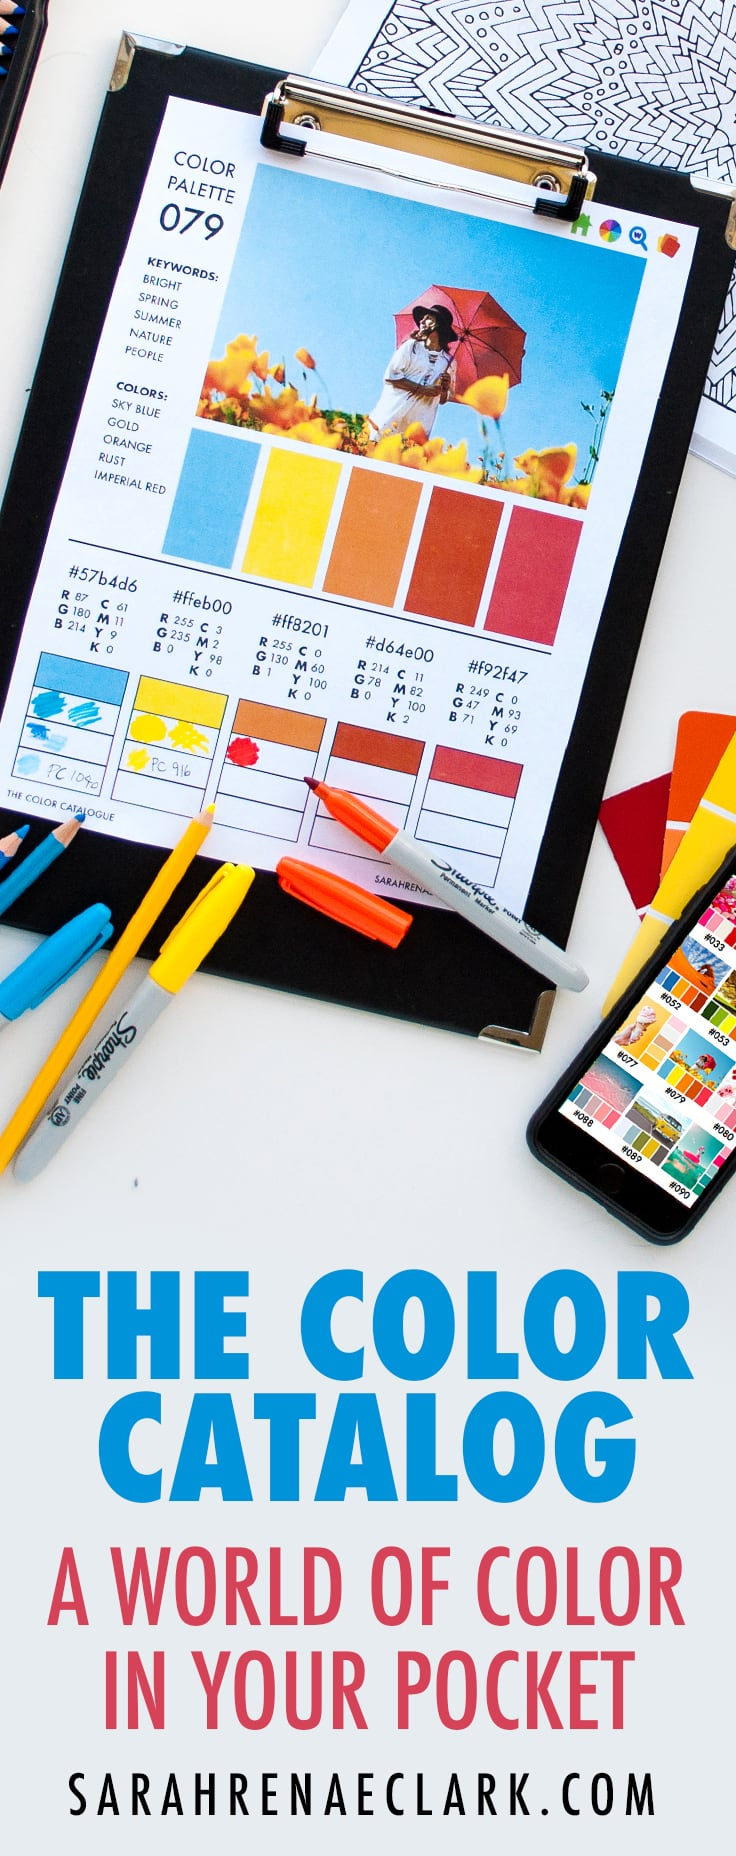 The Color Catalog – A world of color in your pocket